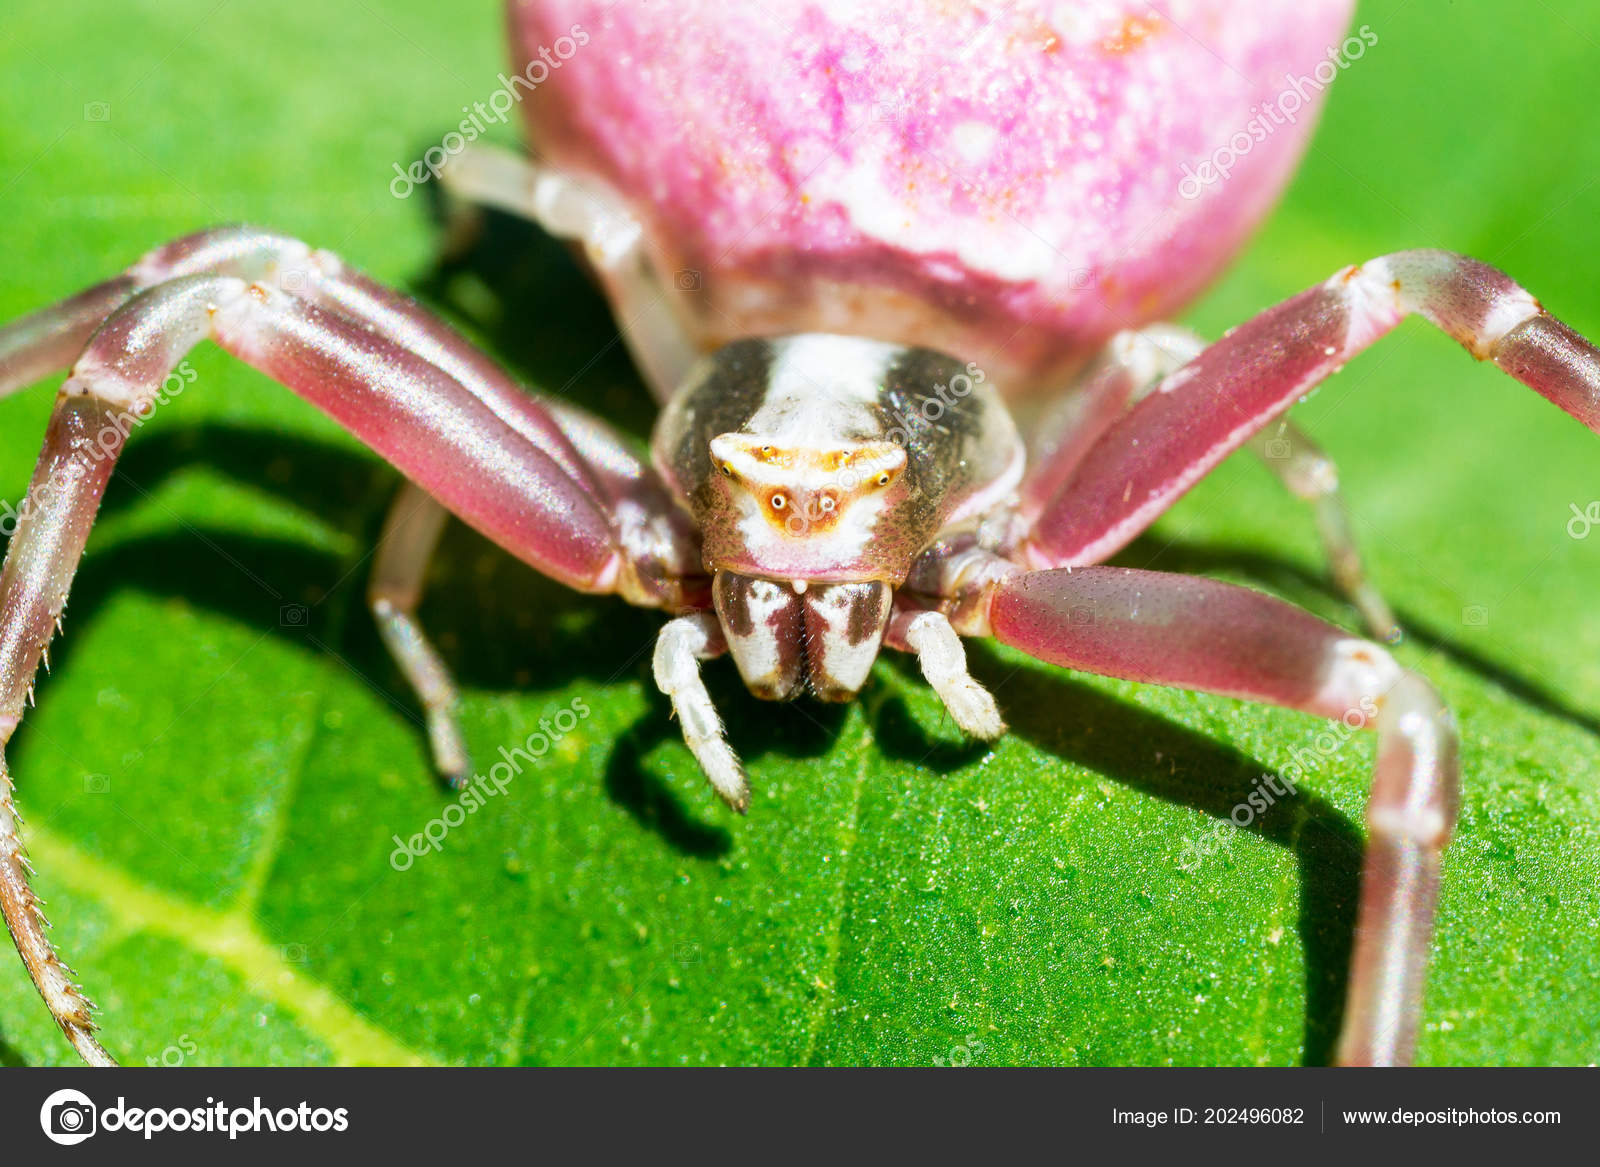 Pink Crab Spider Flower Boat Thomisidae Selective Focus Use In Macro Photography For Dummies Stock Photo